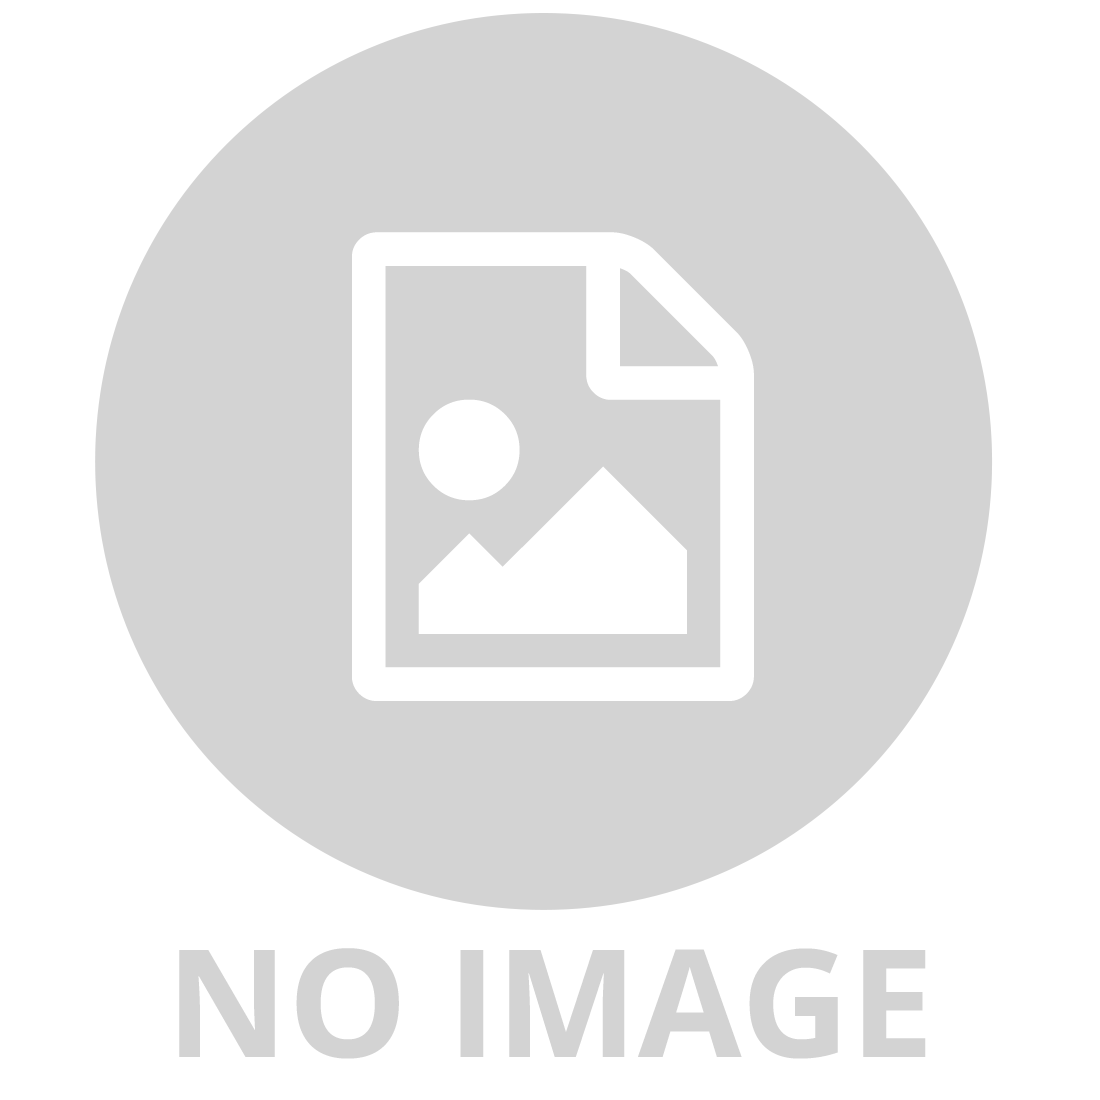 Gyro 200 Exhaust Fan PTBX200 White